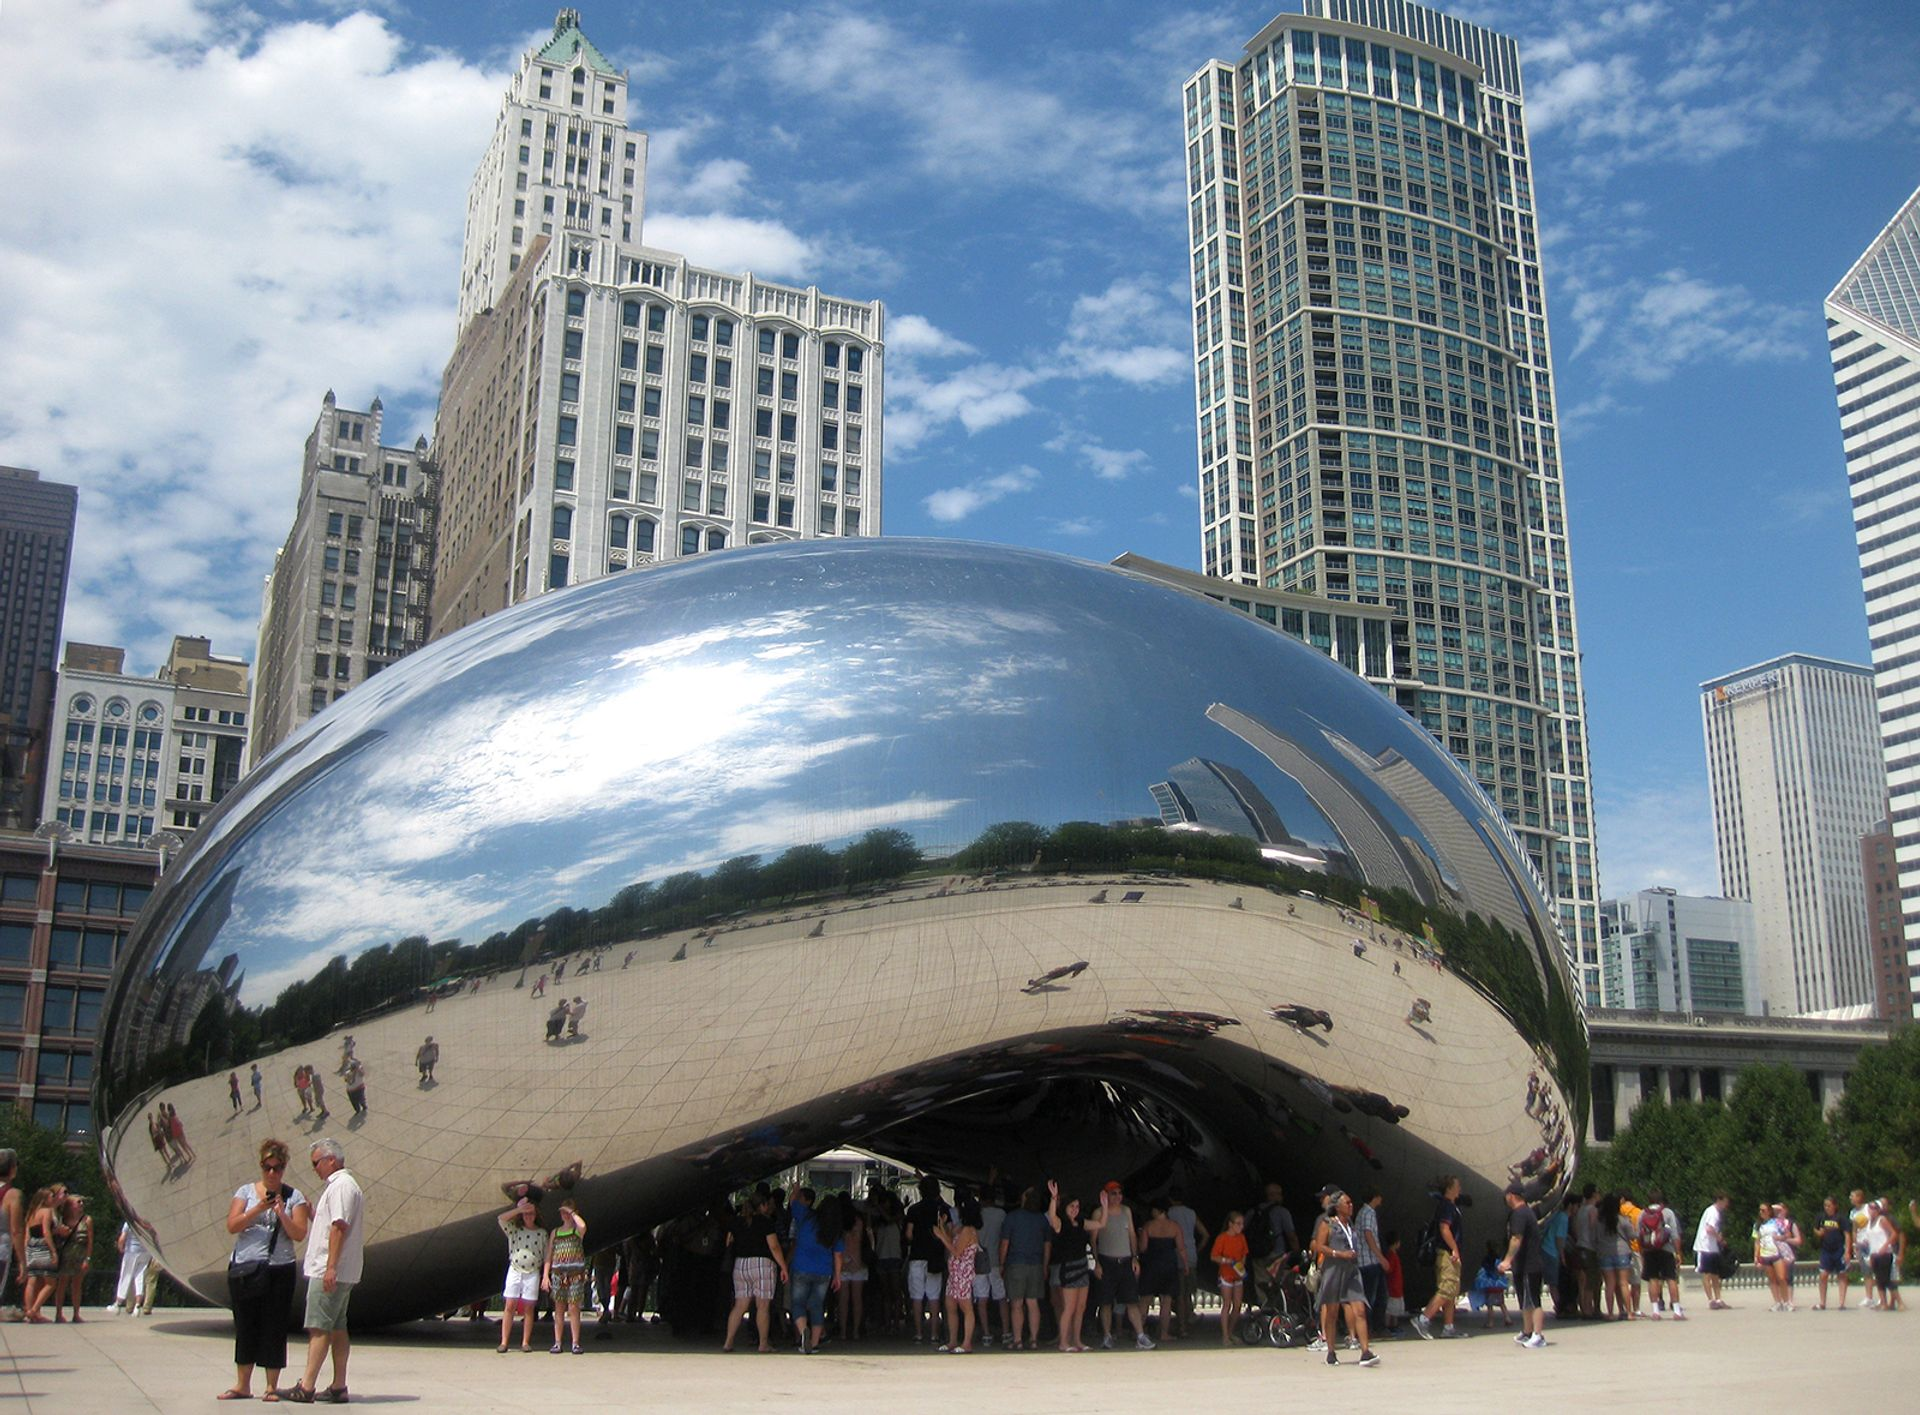 Anish  Kapoor's Cloud  Gate (2004) in Millennium  Park, Chicago Anish  Kapoor.  All  rights  reserved,  2018. Photo: Susan May Romano